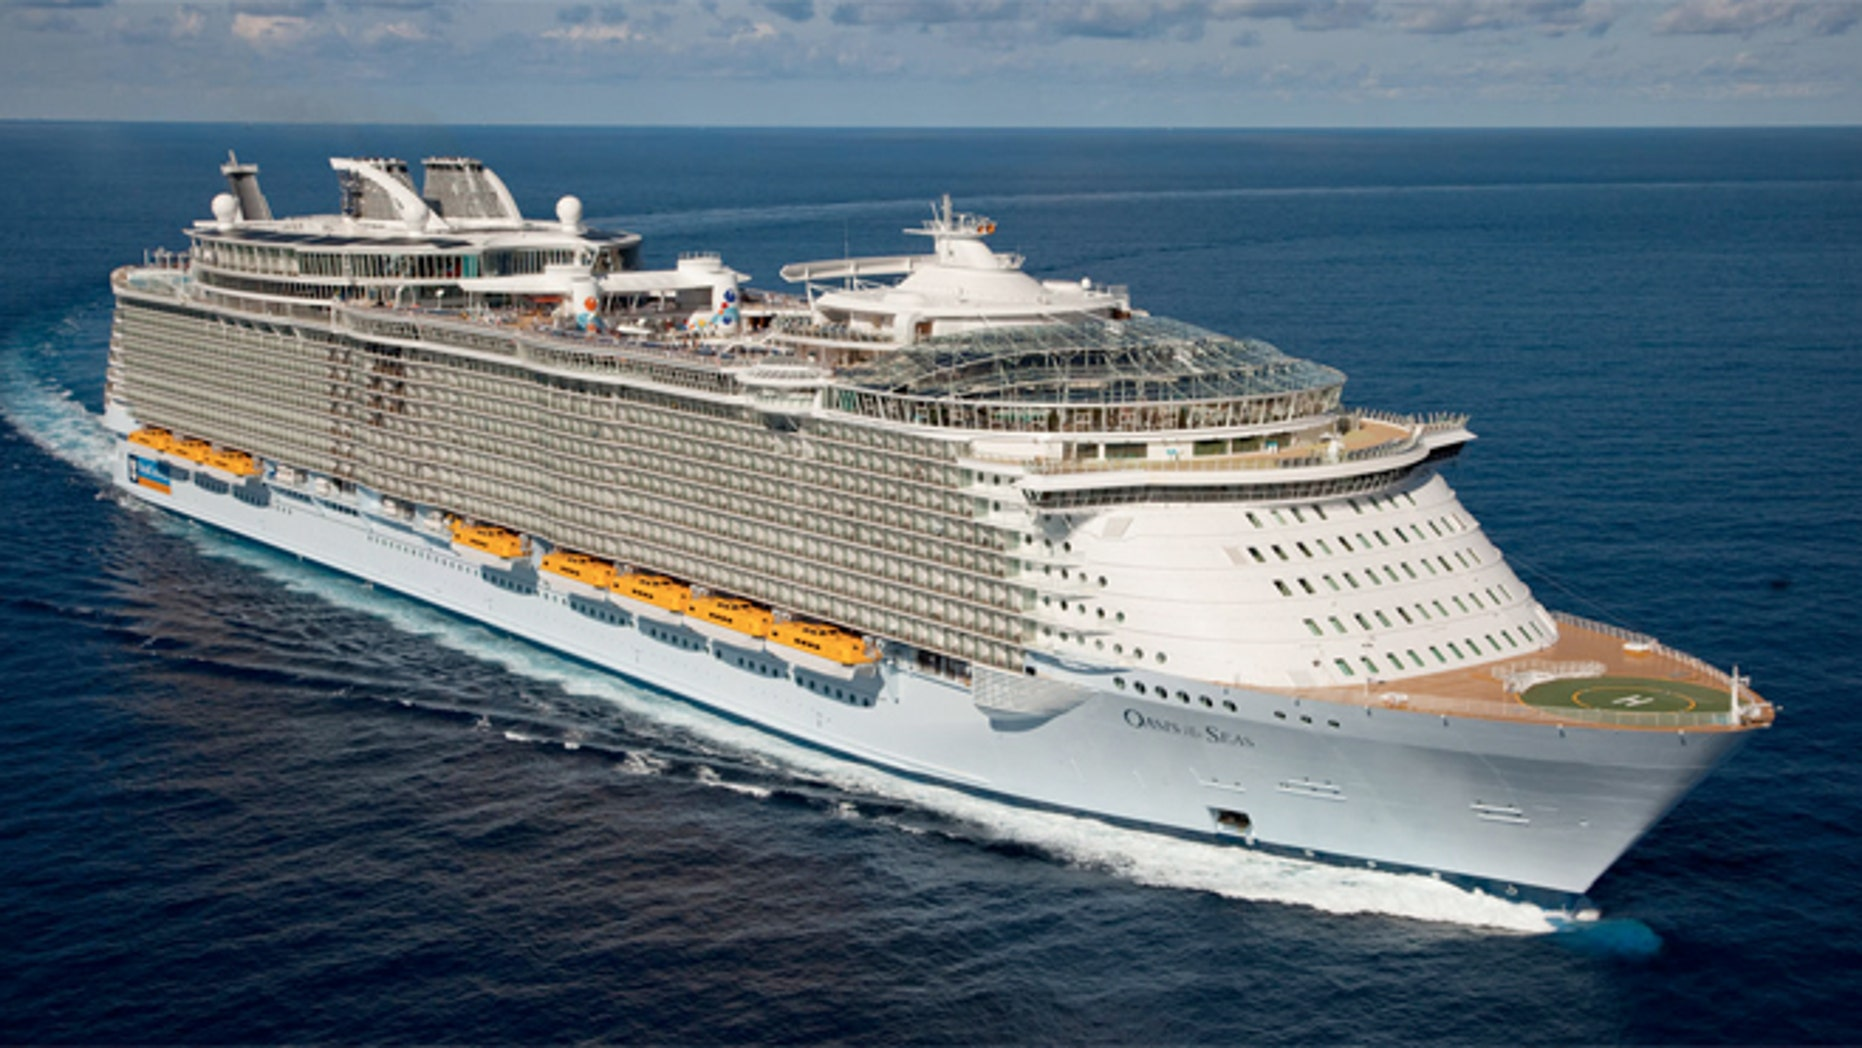 More than 150 people affected by Norovirus outbreak on Royal Caribbean cruise